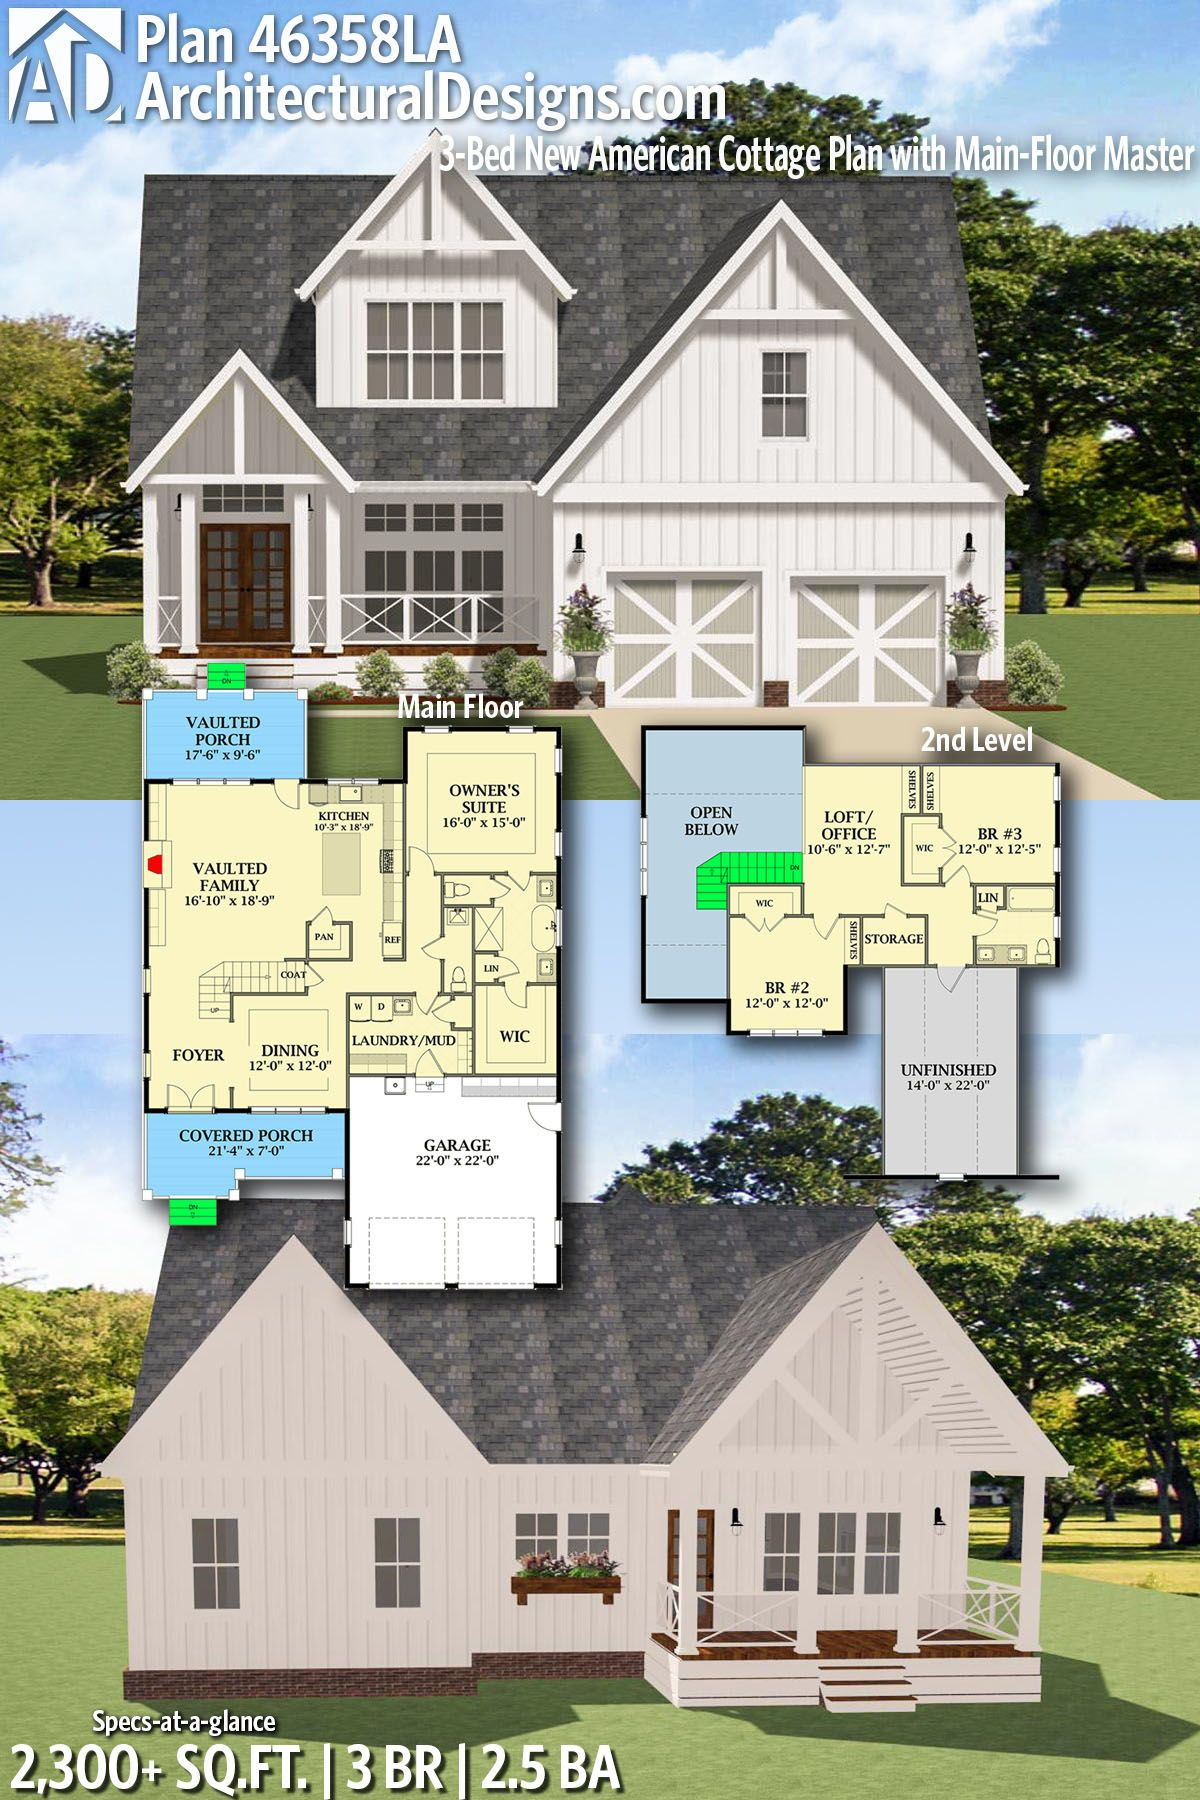 Plan 46358la 3 Bed New American Cottage Plan With Main Floor Master Cottage Plan New House Plans House Plans